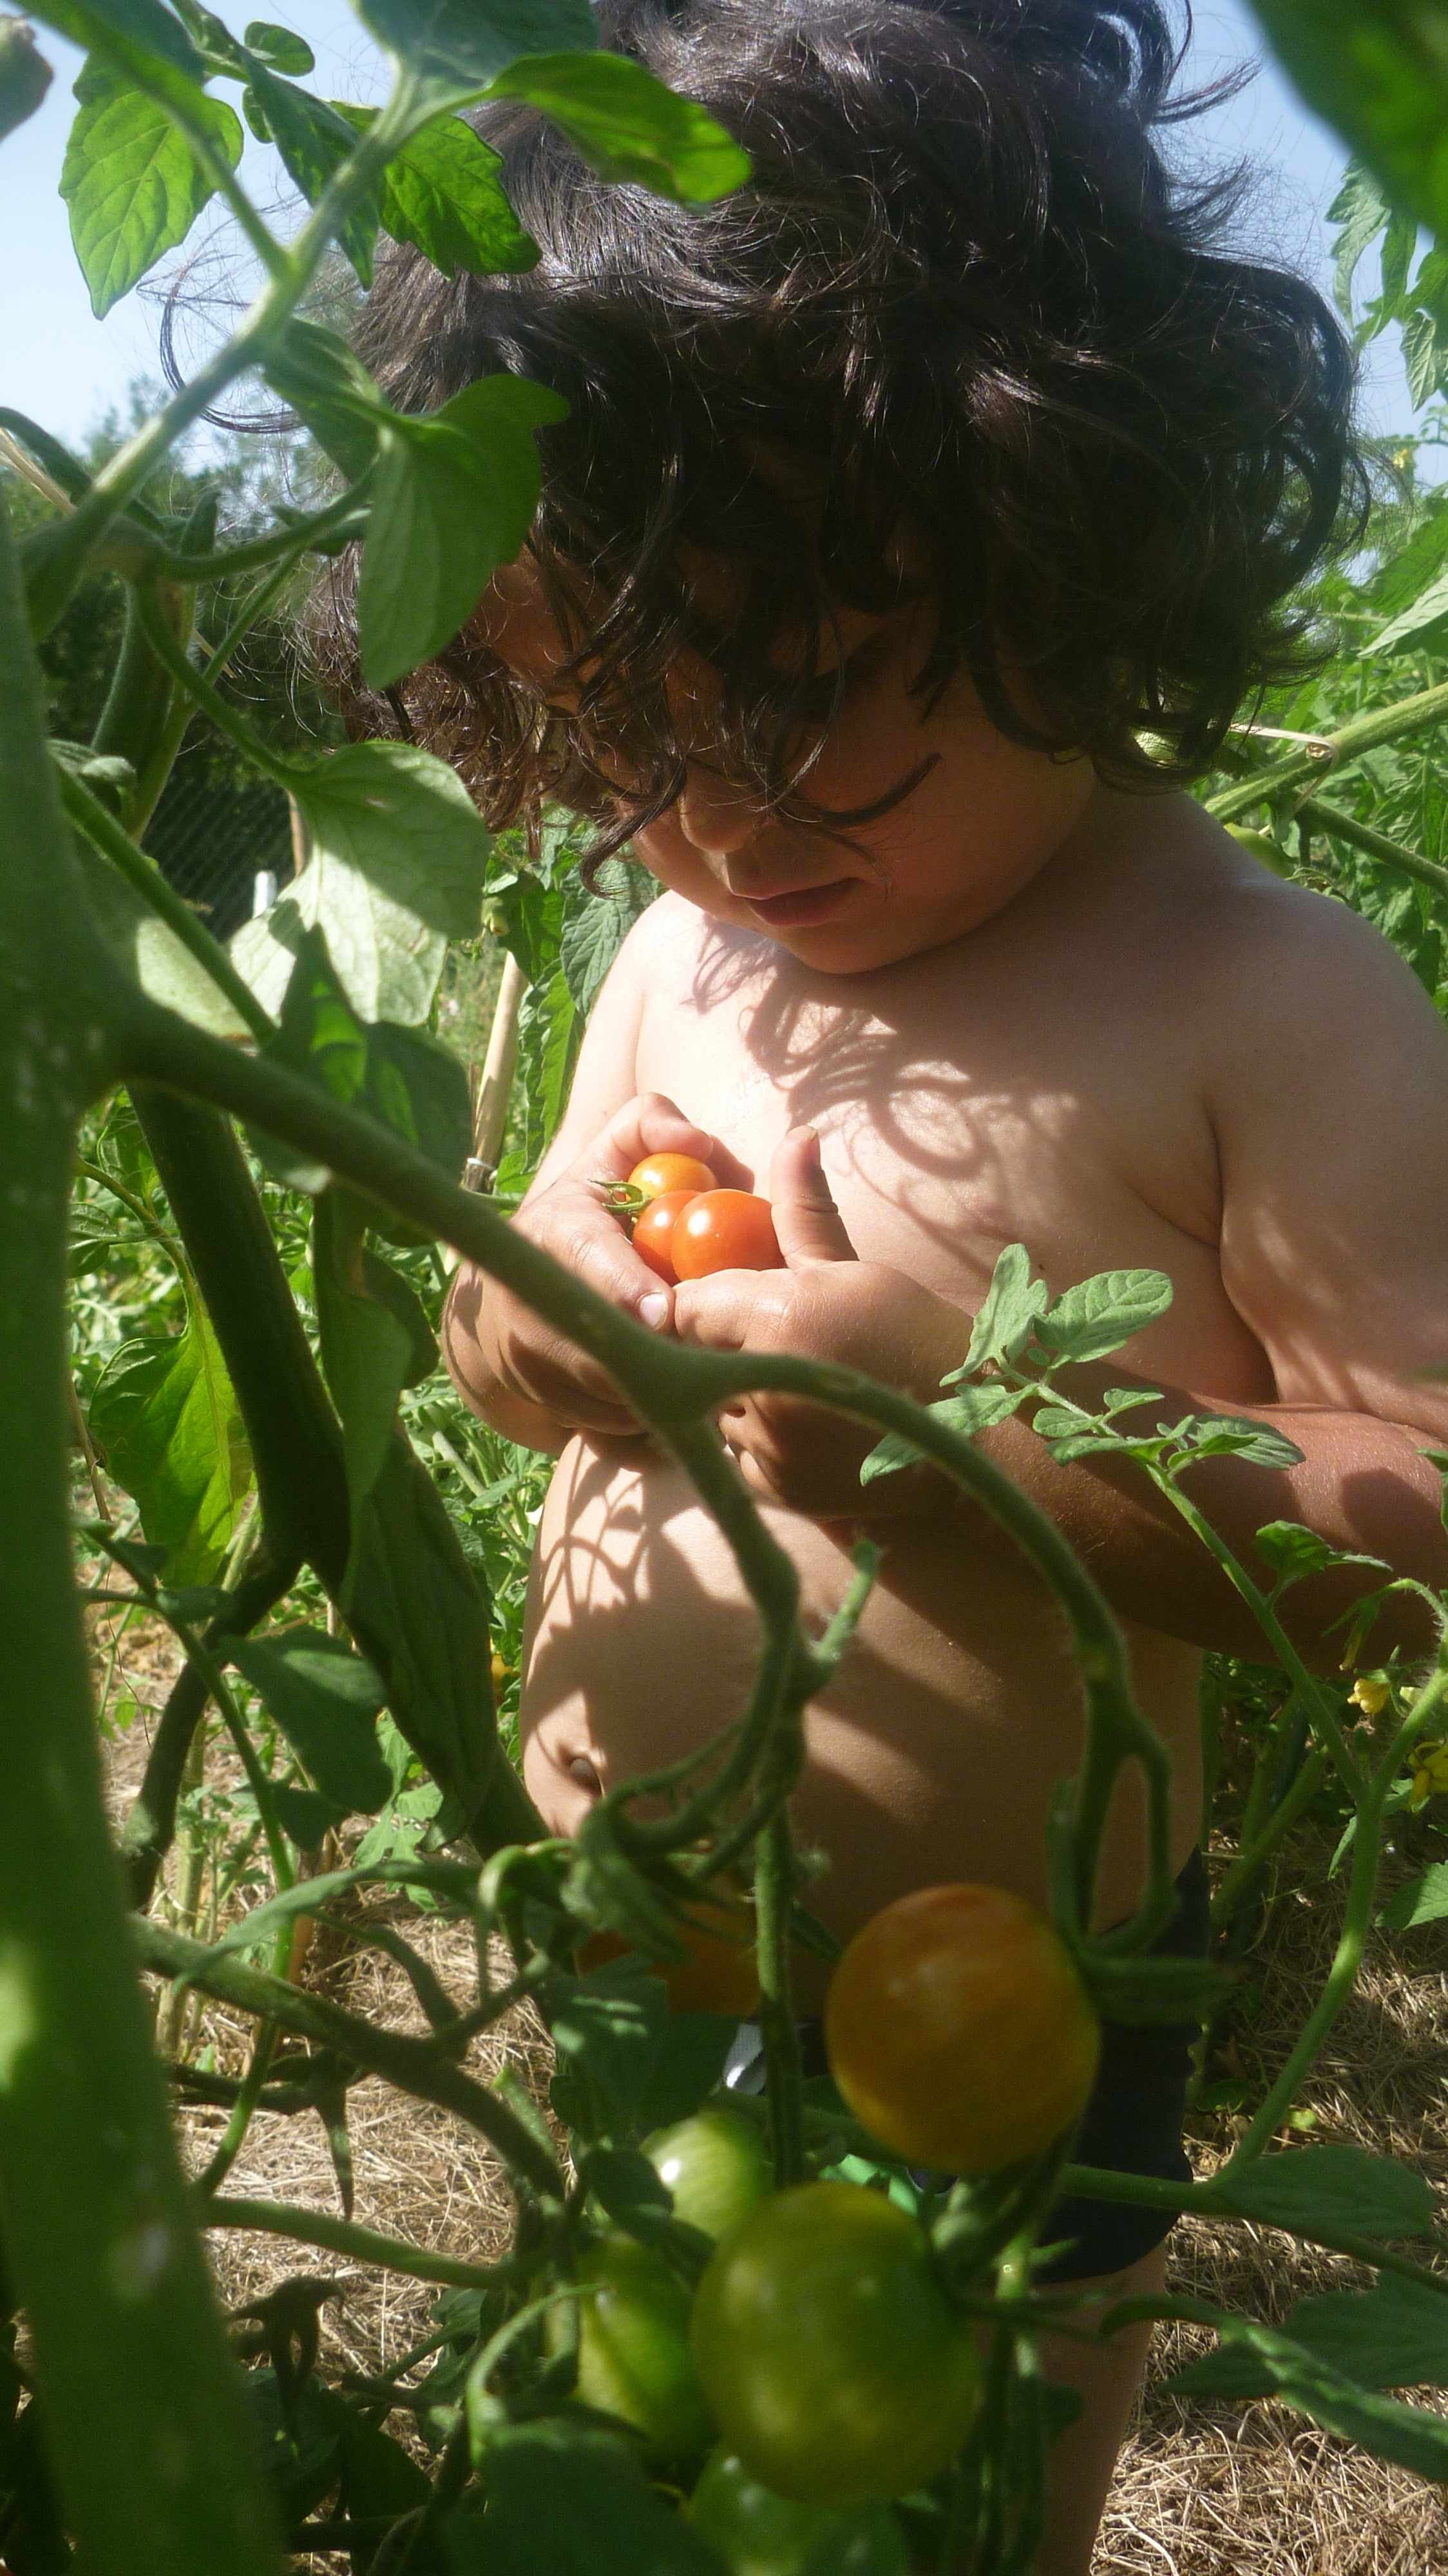 A blog (and tomato) holiday!